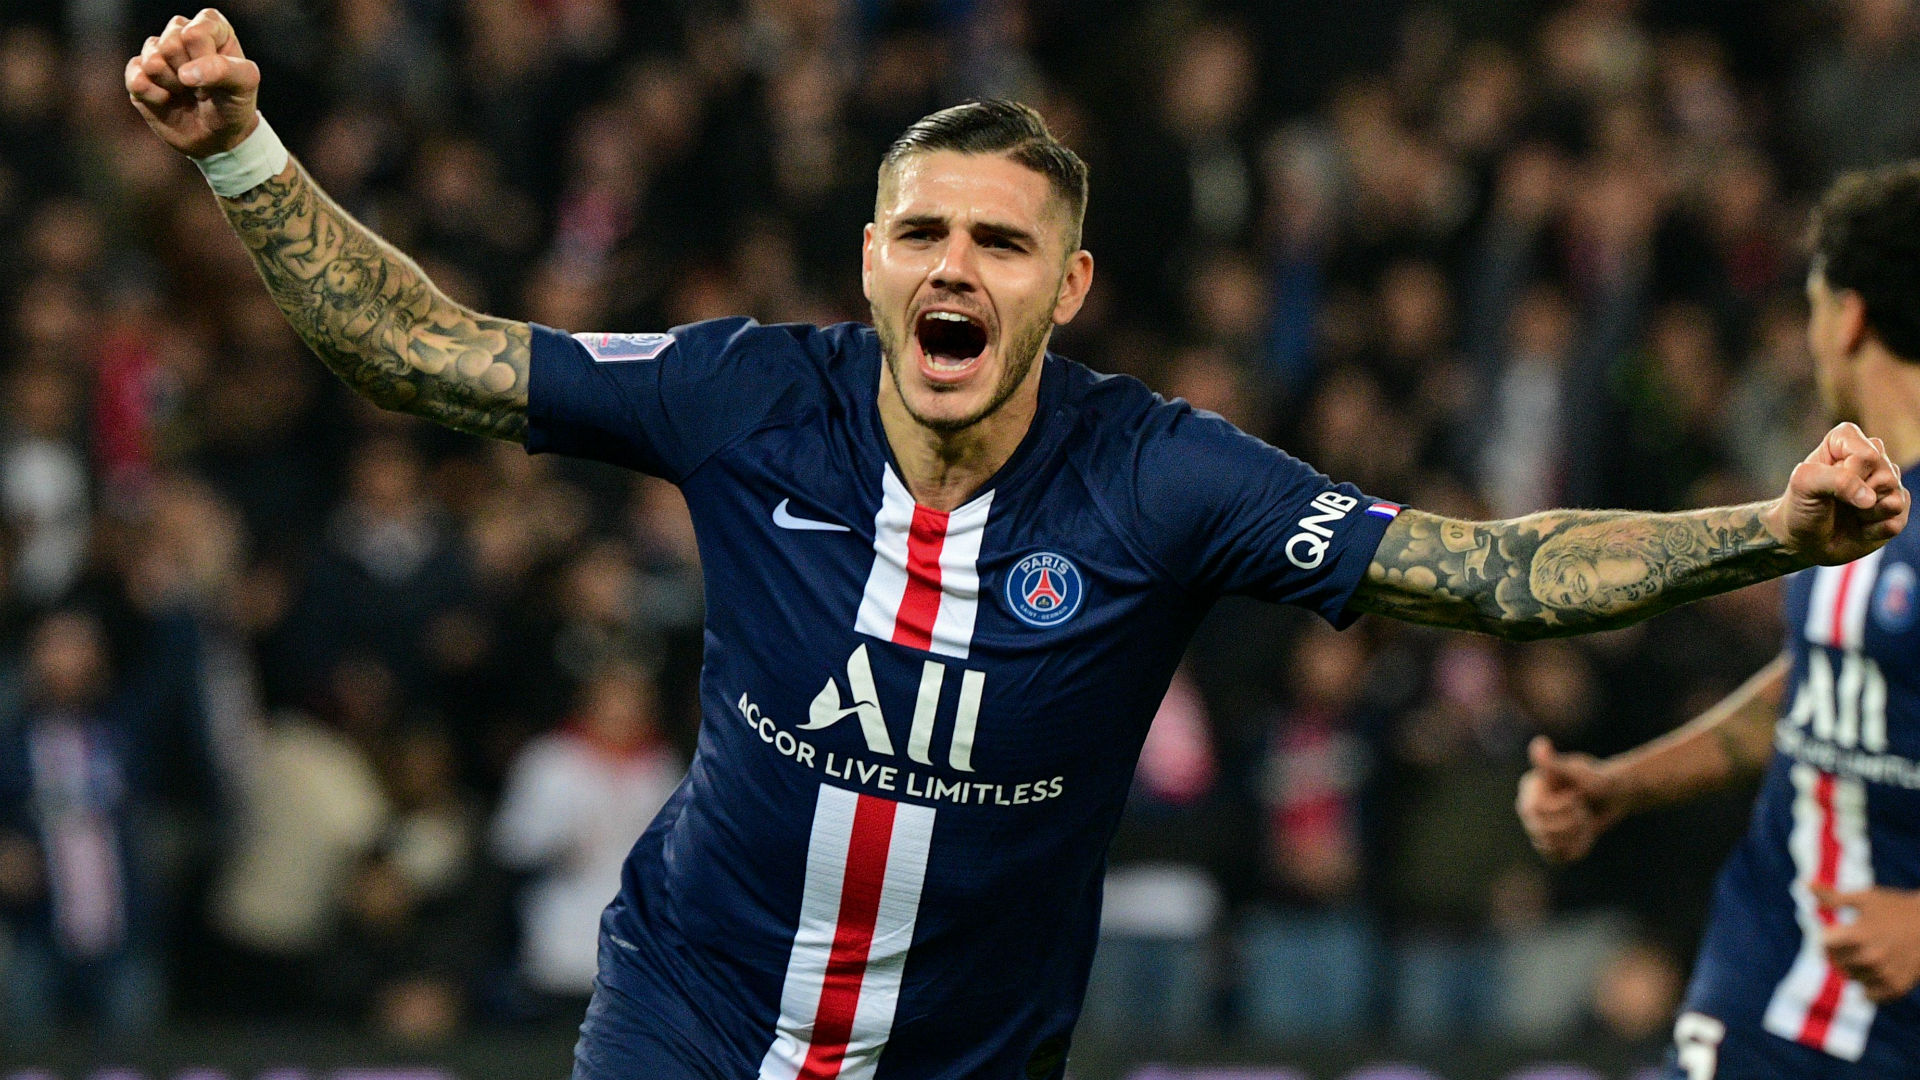 'He is an amazing player who has made history in PSG' - Icardi keen to form partnership with Cavani